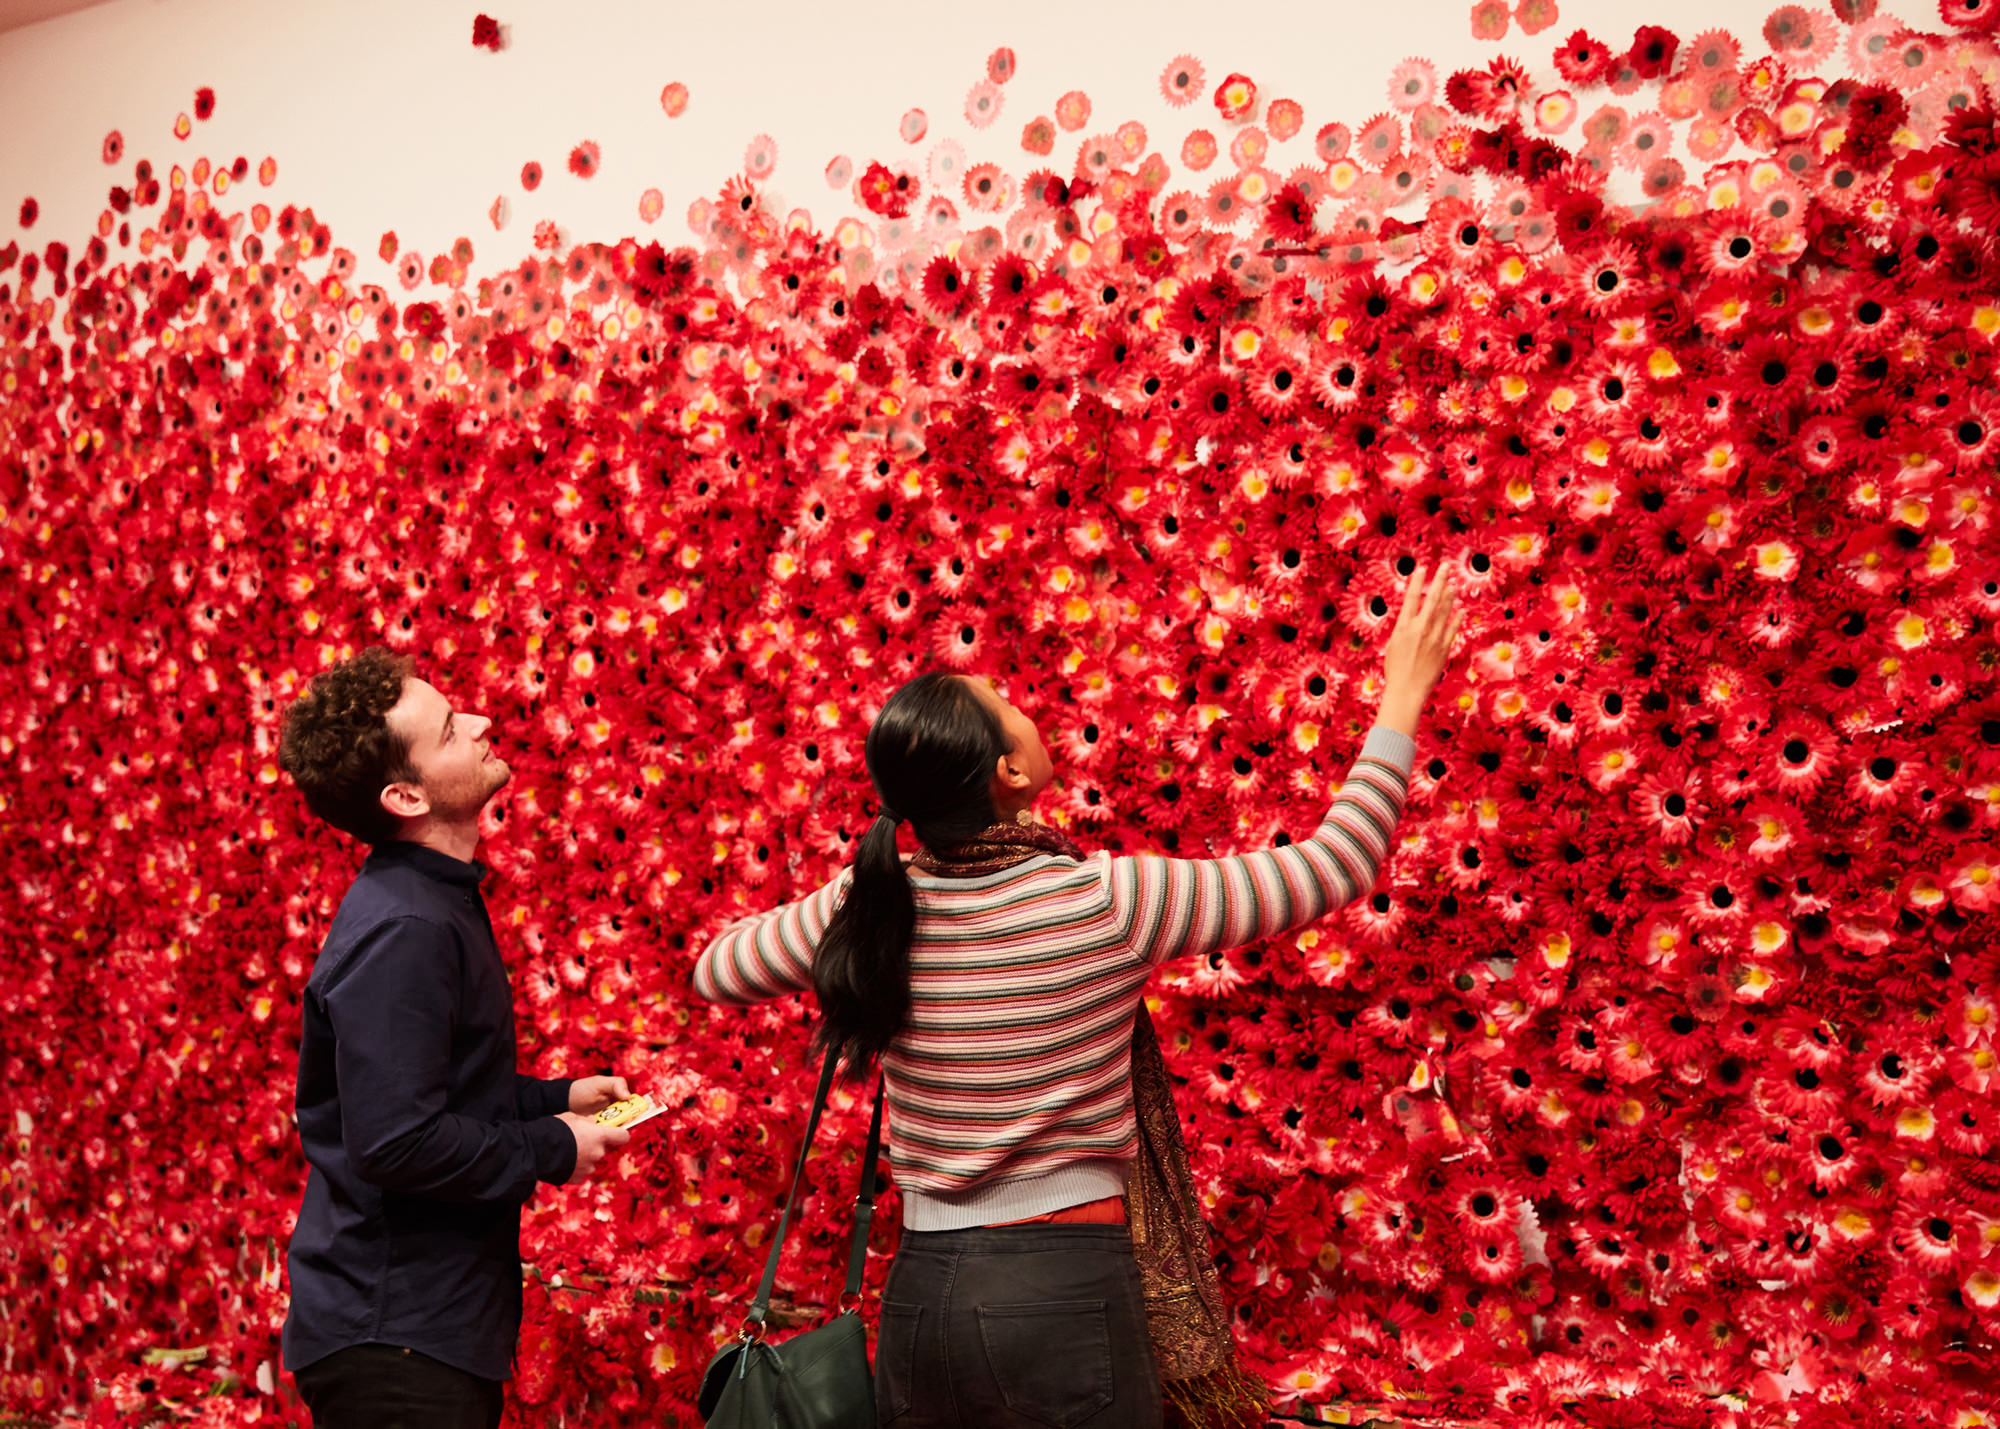 Yayoi Kusama's Flower obsession 2017 on display at NGV Triennial 2017. Photo: Sam Wong